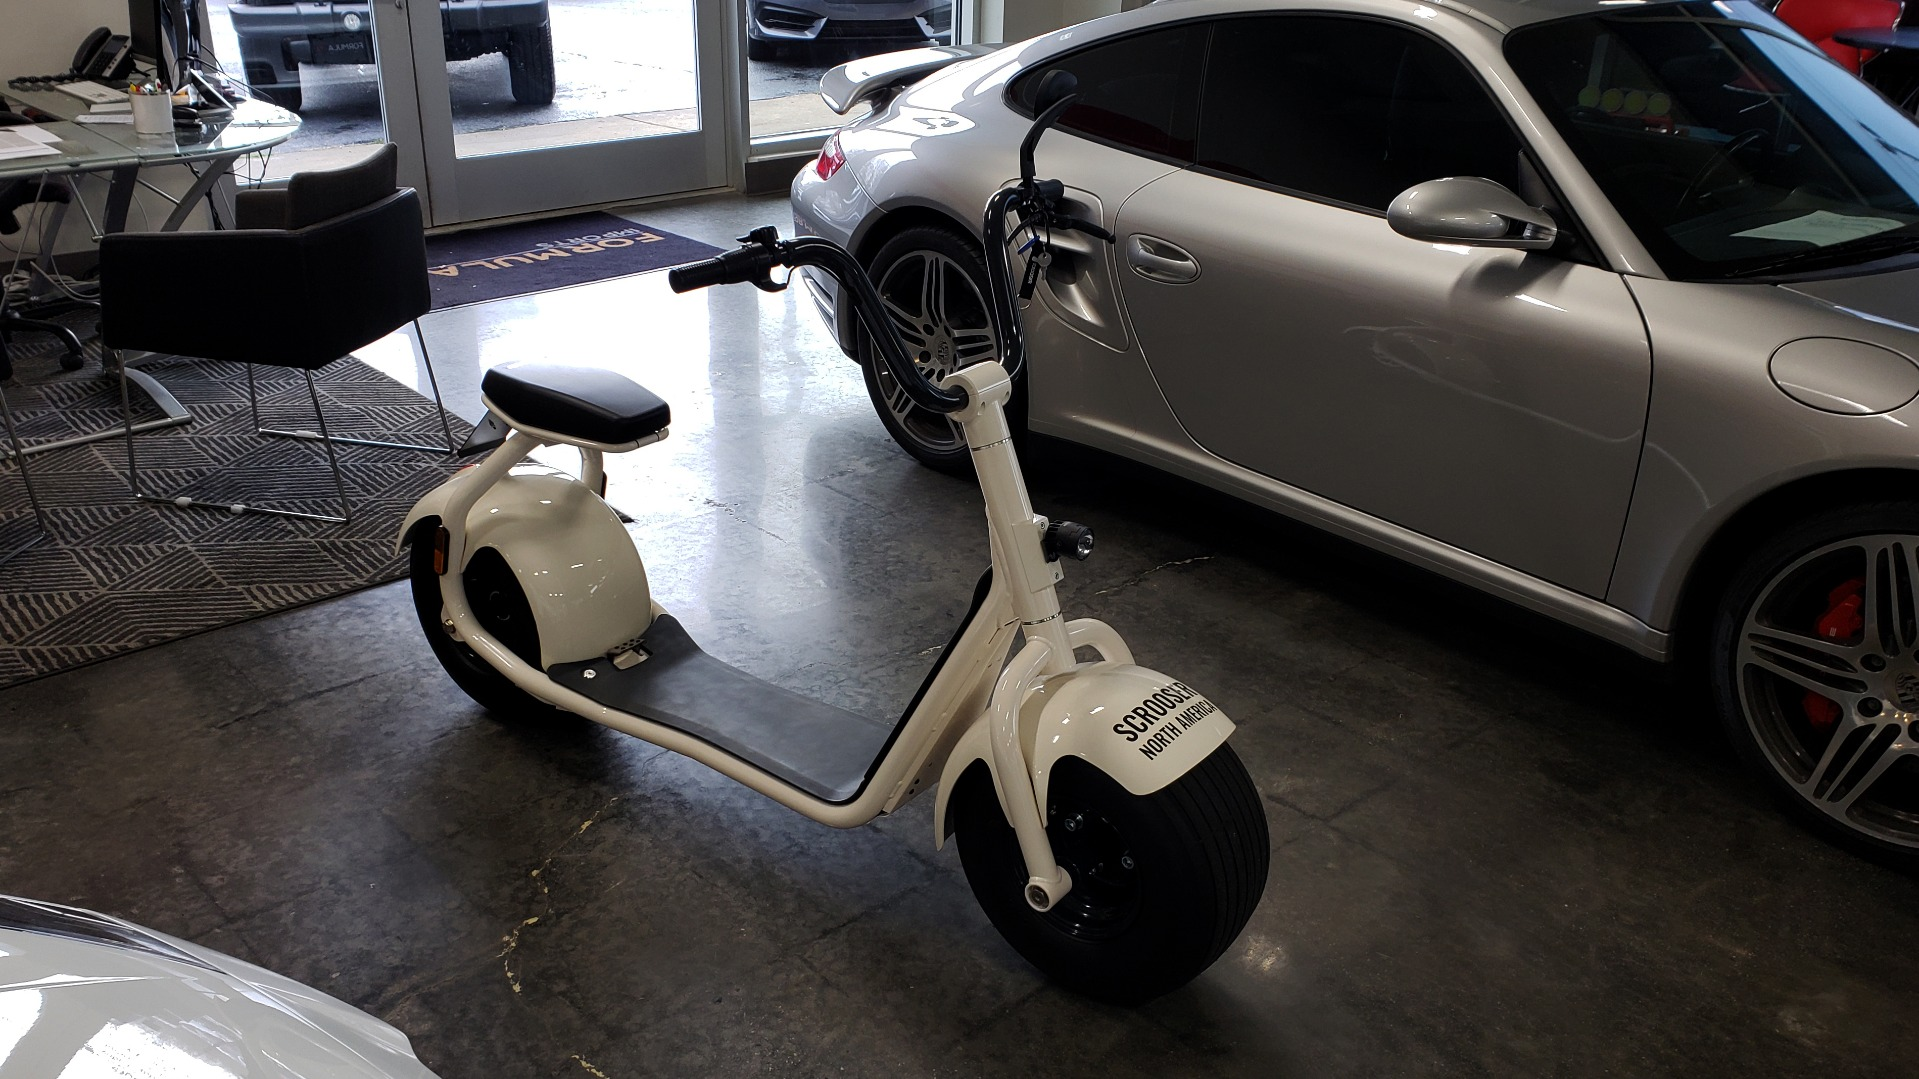 Used 2018 SCROOSER ELECTRIC SCOOTER SELF BALANCED / FOAM WHITE / 15.5 MPH / 34 MI RANGE for sale $1,699 at Formula Imports in Charlotte NC 28227 1